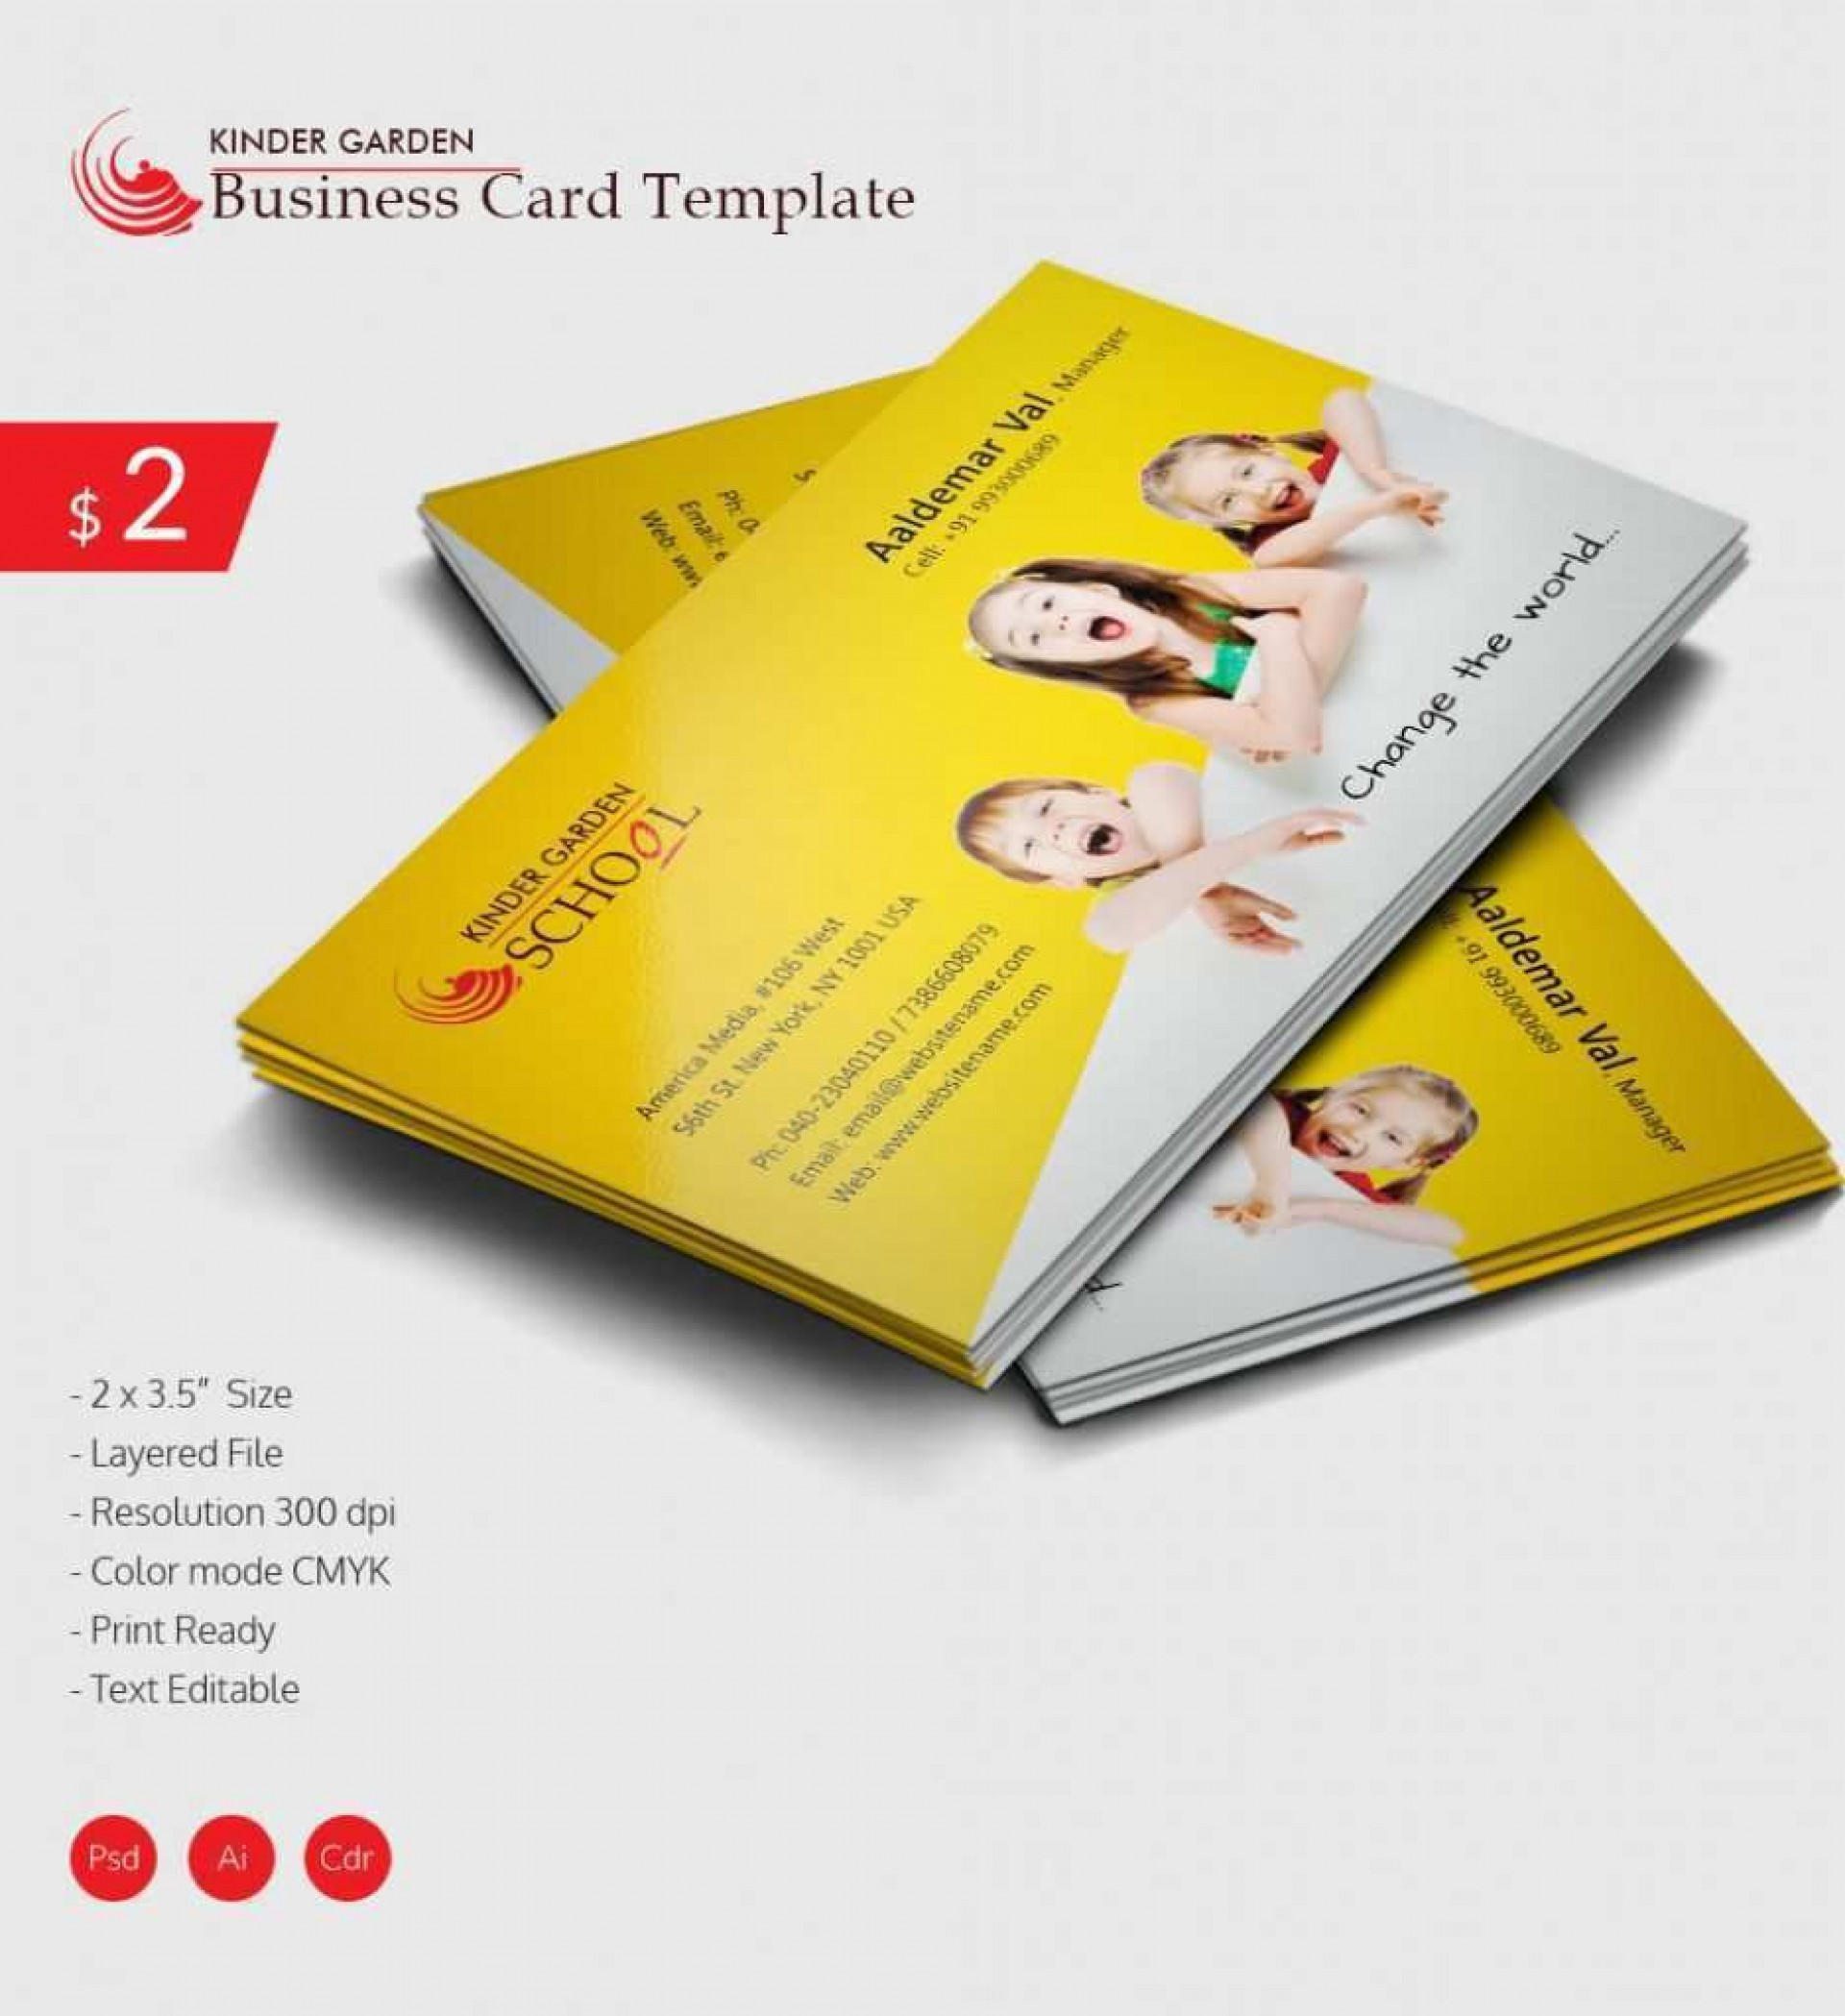 003 Unbelievable Free Blank Busines Card Template Photoshop Design  Download Psd1920